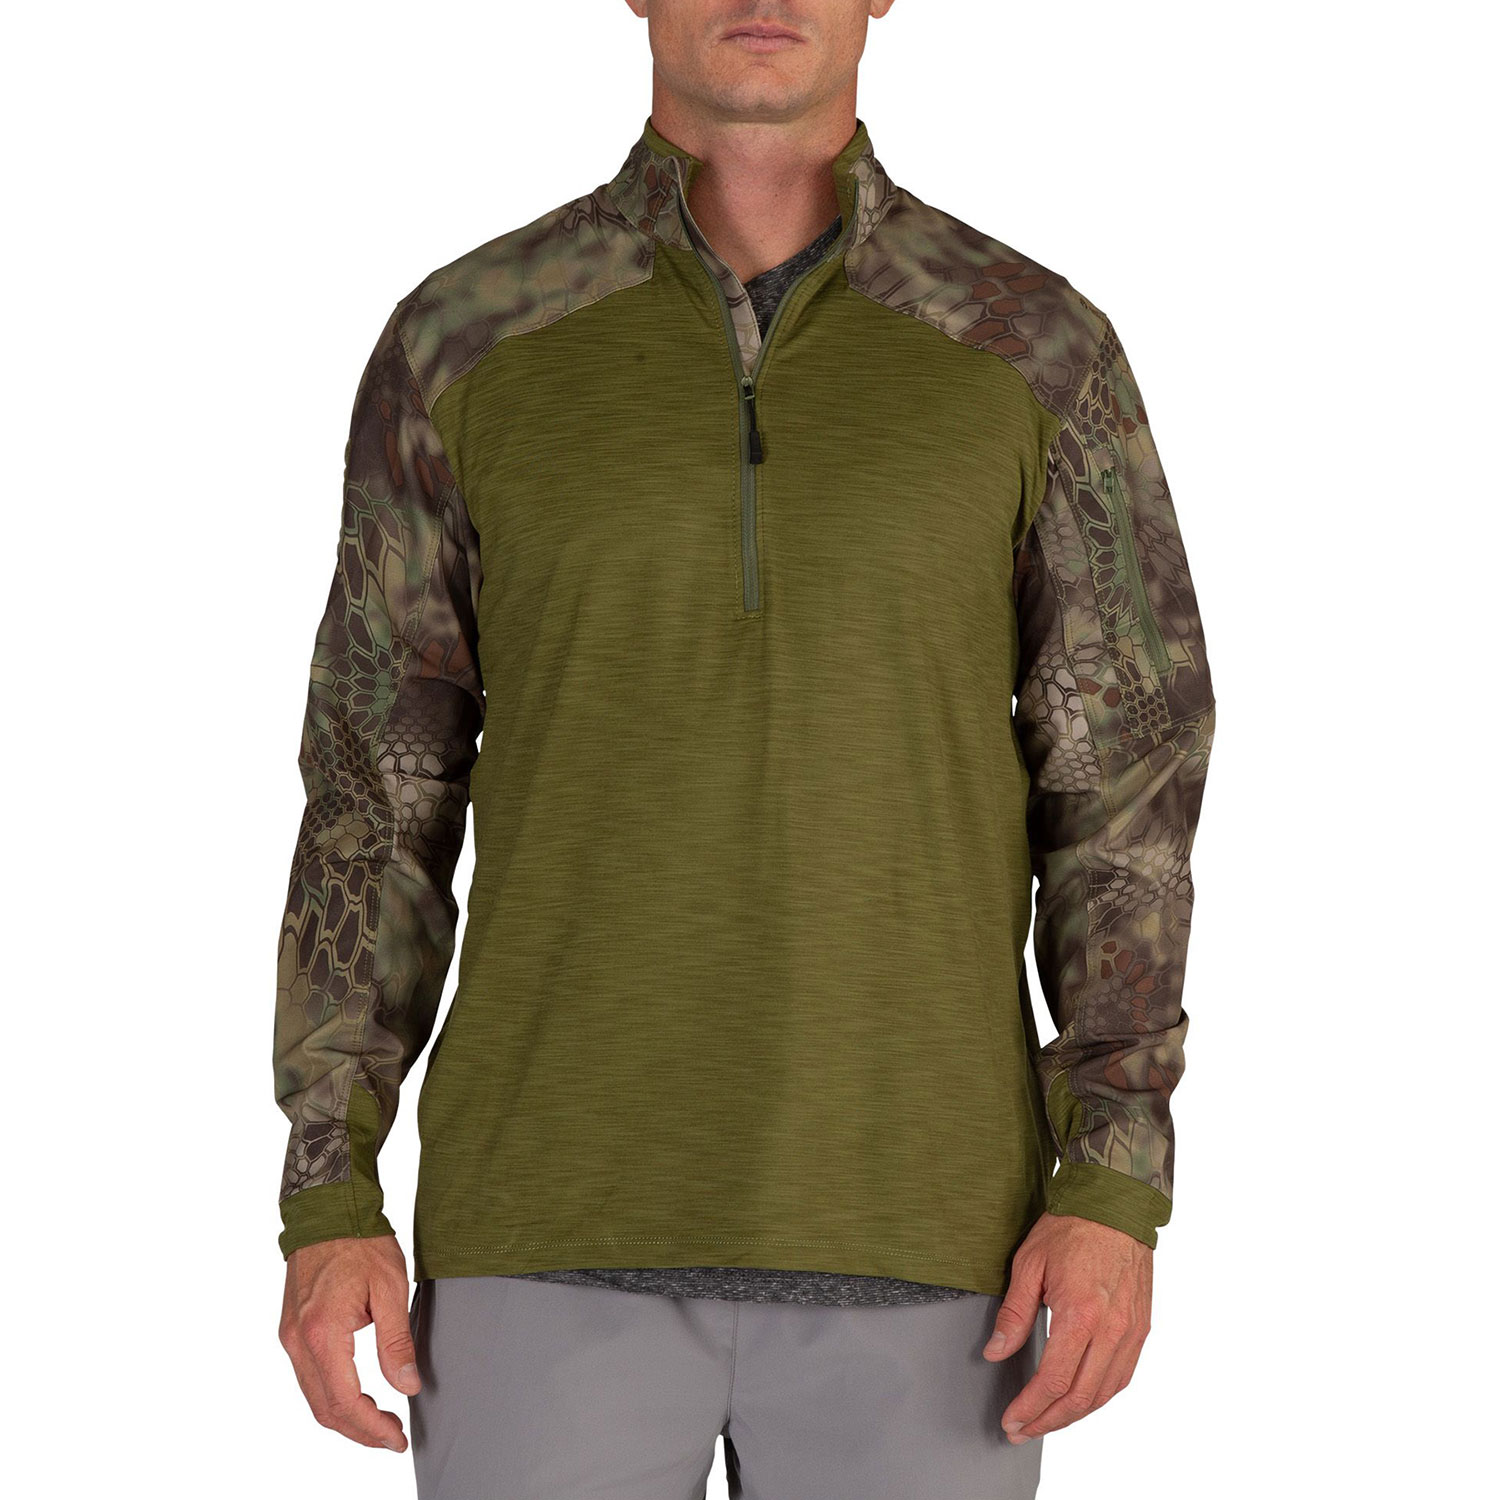 5.11 Tactical Rapid Half Zip Pullover